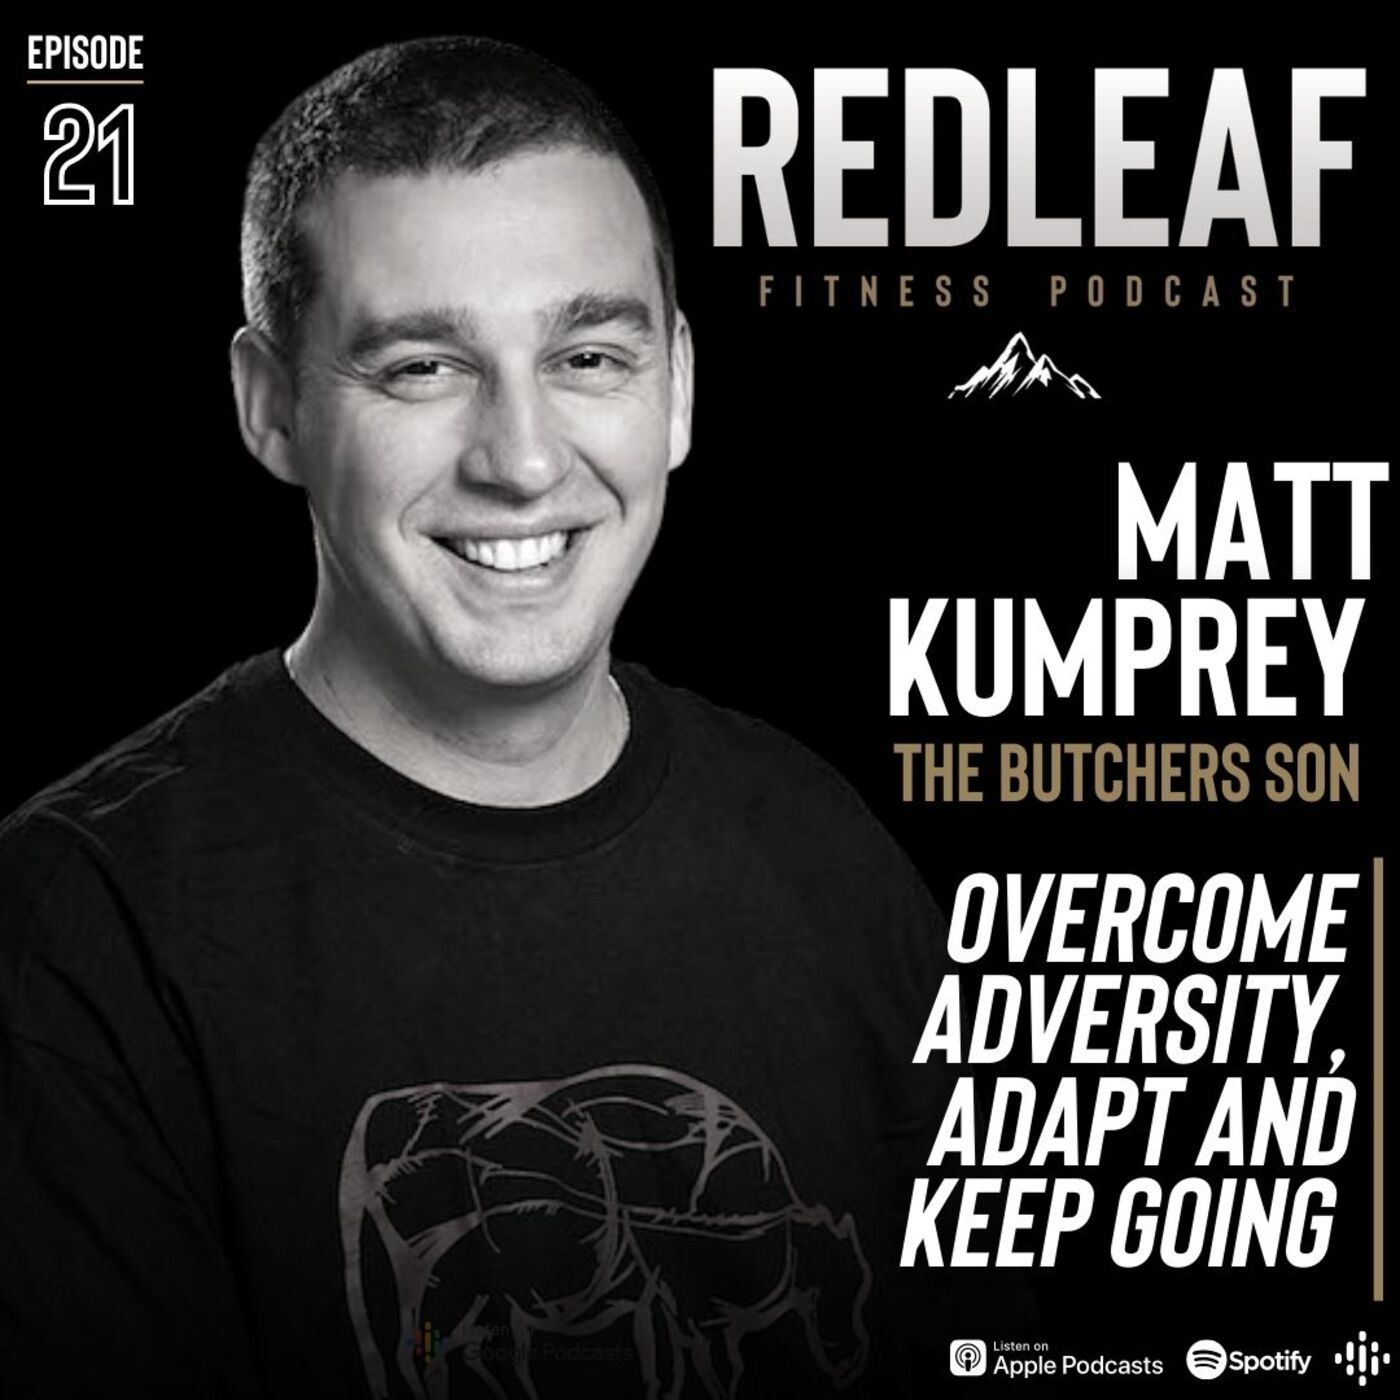 Ep.21 | Matt Kumprey, Co-Owner of The Butchers Son - Overcome Adversity, Adapt and Keep Going